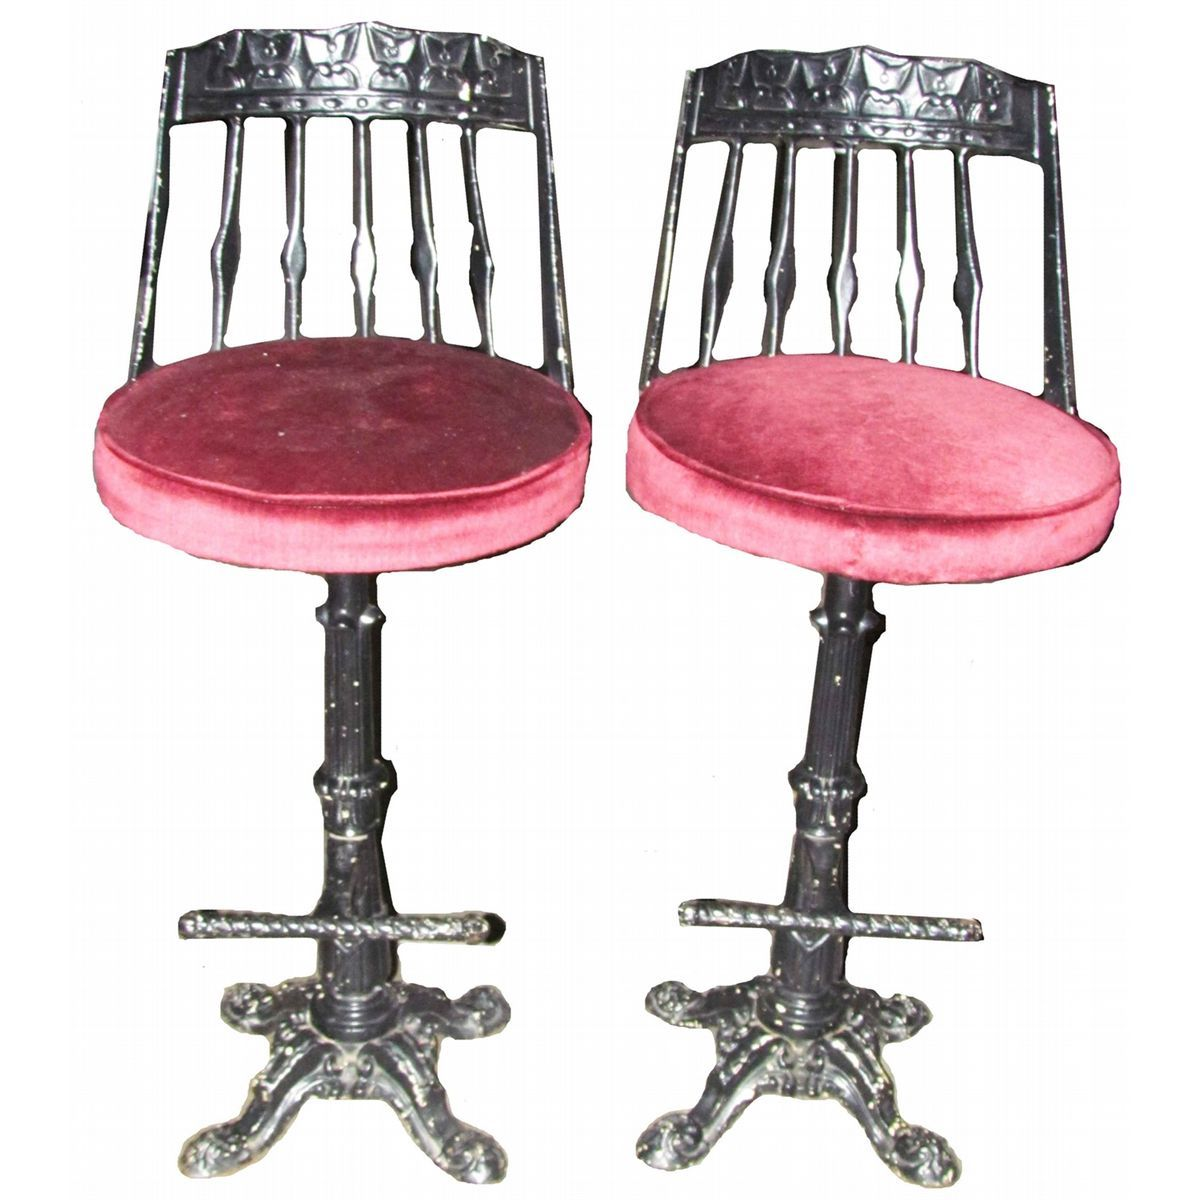 Unique Rot Iron Bar Stools